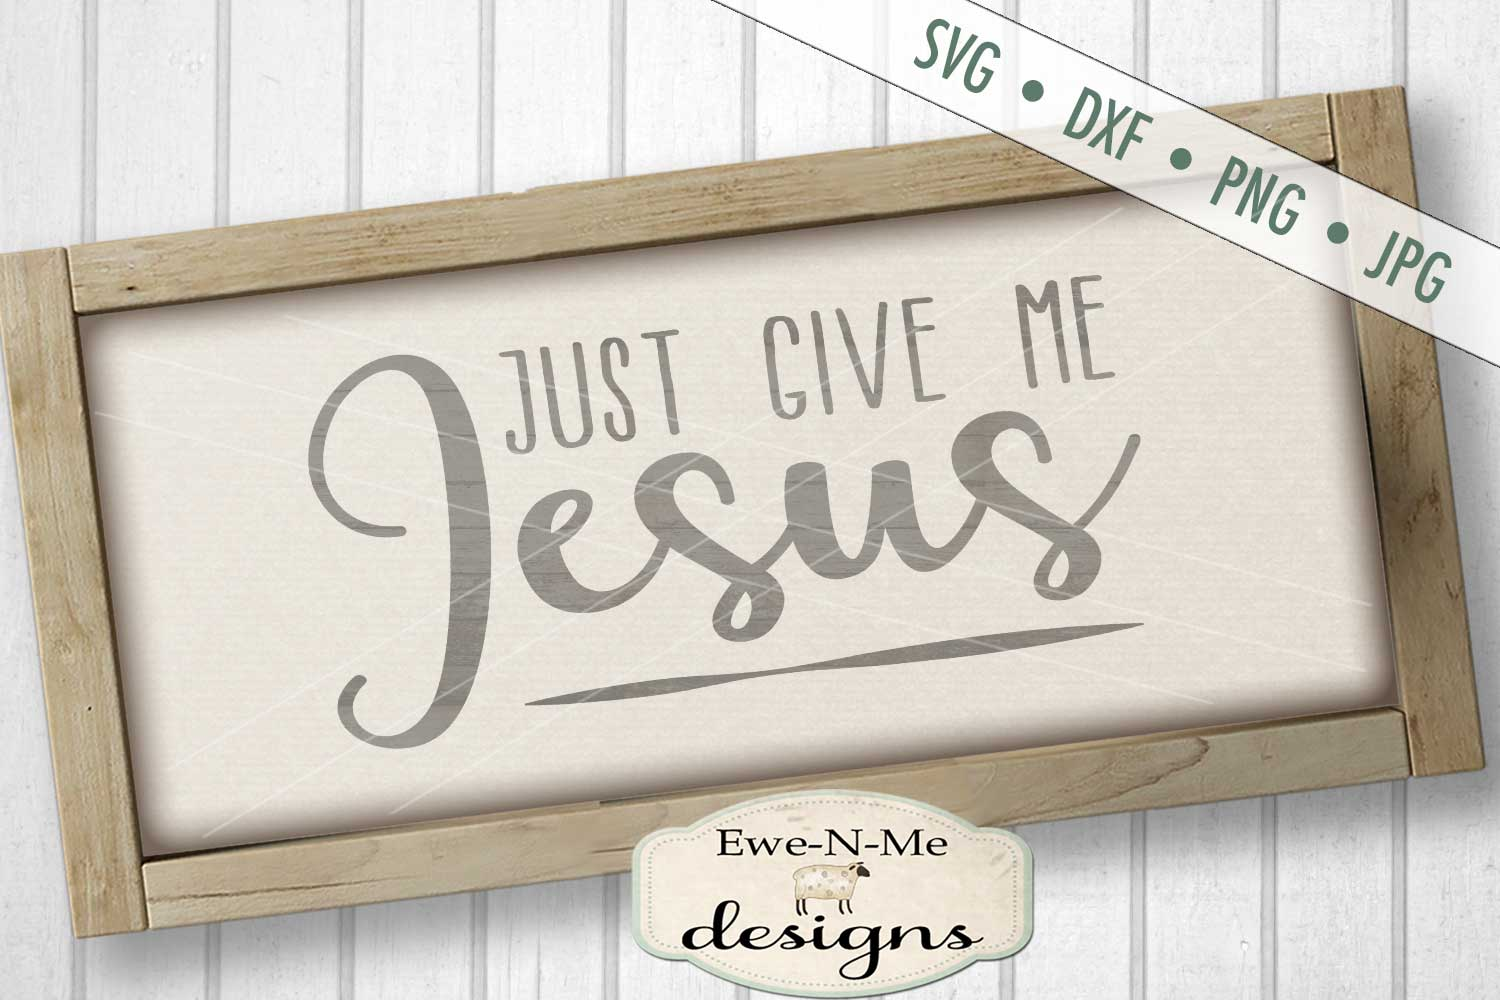 Just Give Me Jesus Christian SVG DXF Cut File example image 1